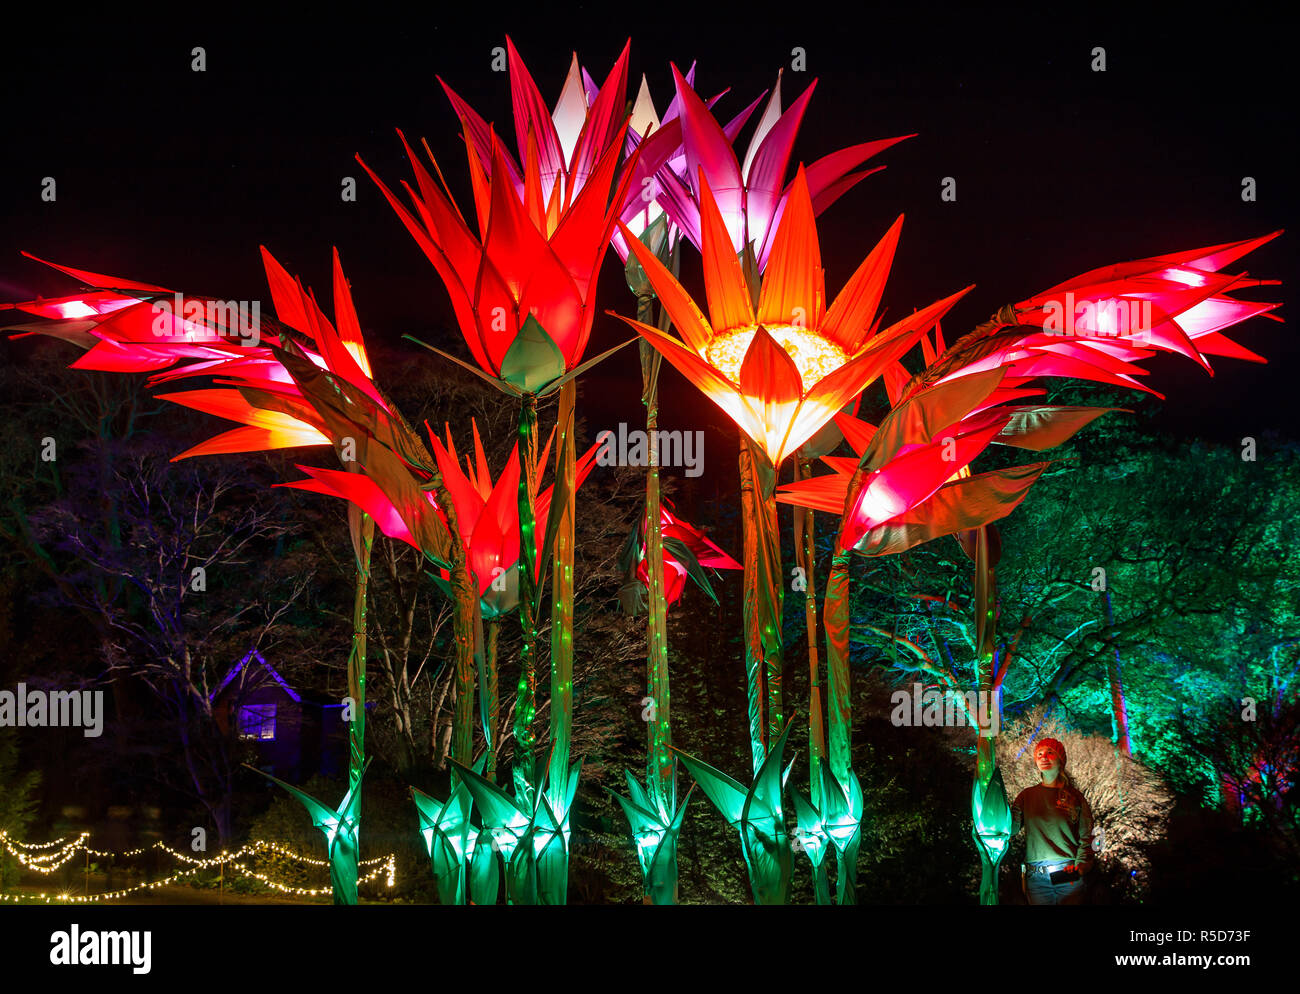 Wisley, Surrey, UK, 30 November 2018.  30th November 2018. Naomi Trenier, 31 from Surrey pictured admiring the display of flowers.  The daily light installations returns to Wisley from 1 December until Wednesday 2 January 2019 from 4pm - 8pm.  Back for its fourth year, Christmas Glow guides visitors around a new route for 2018, taking in locations including the Rock Garden, the Seven Acres lake and the Jellicoe Canal. Credit: Oliver Dixon/Alamy Live News - Stock Image